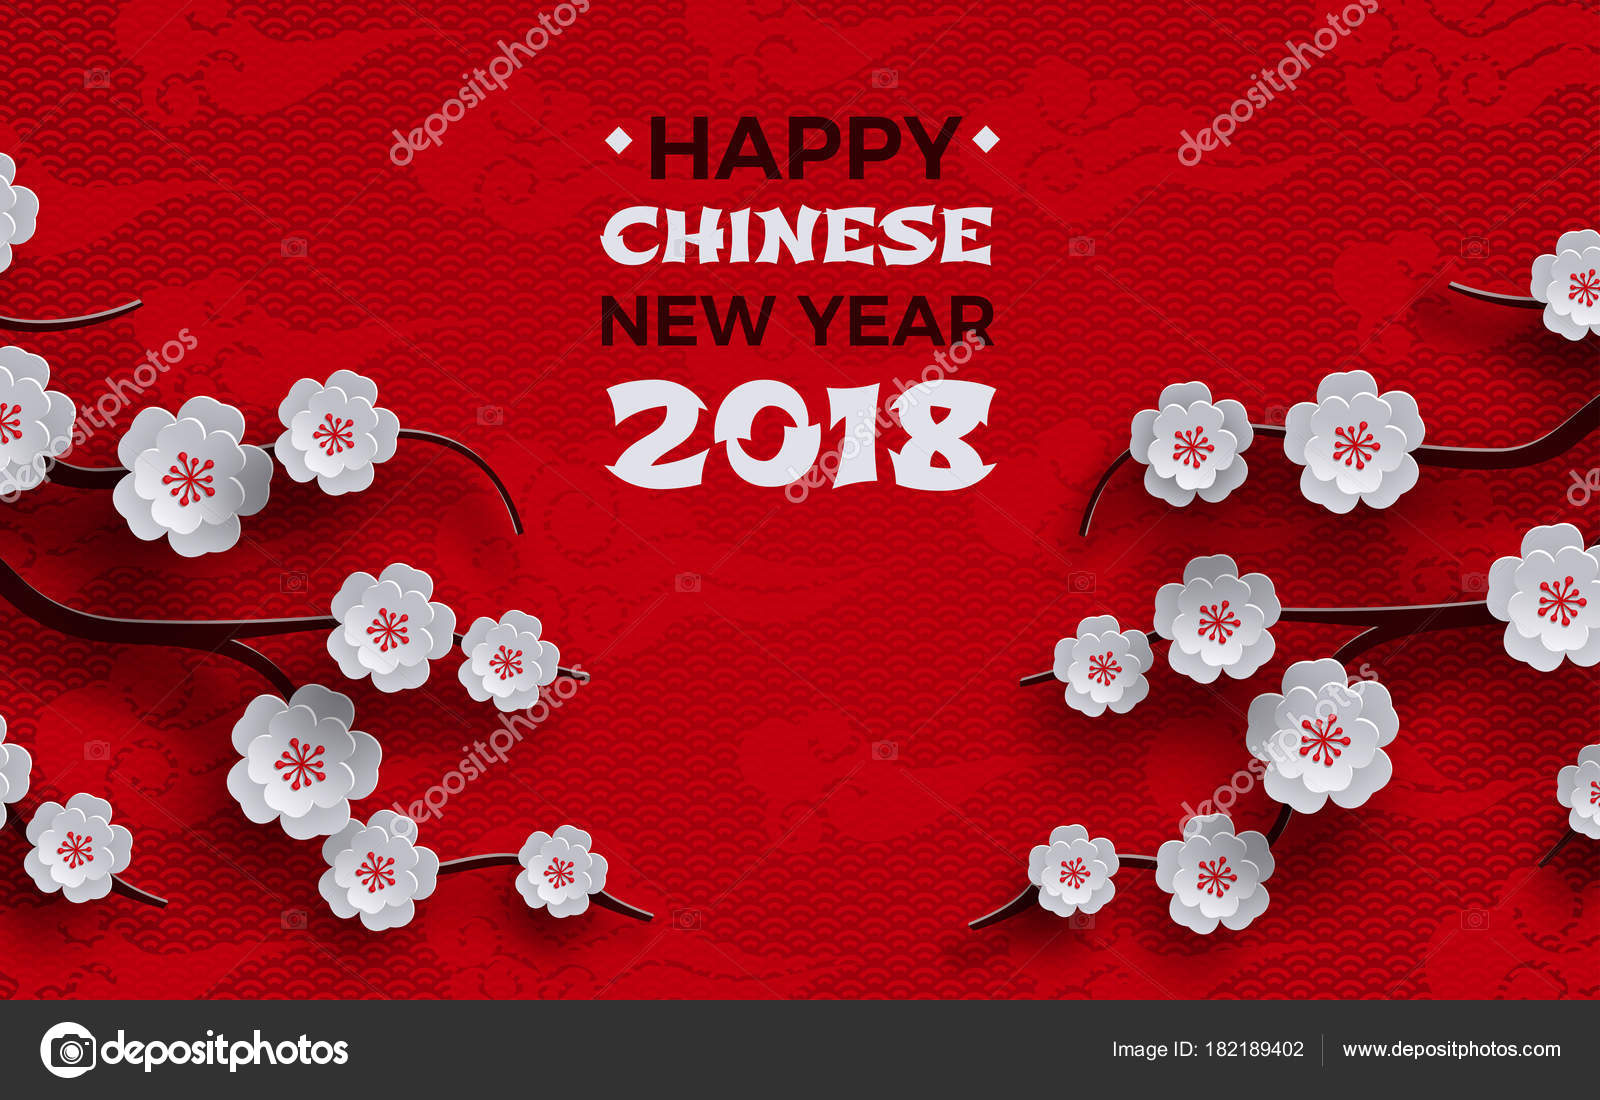 2018 chinese new year banner red background traditional sakura cherry stock vector